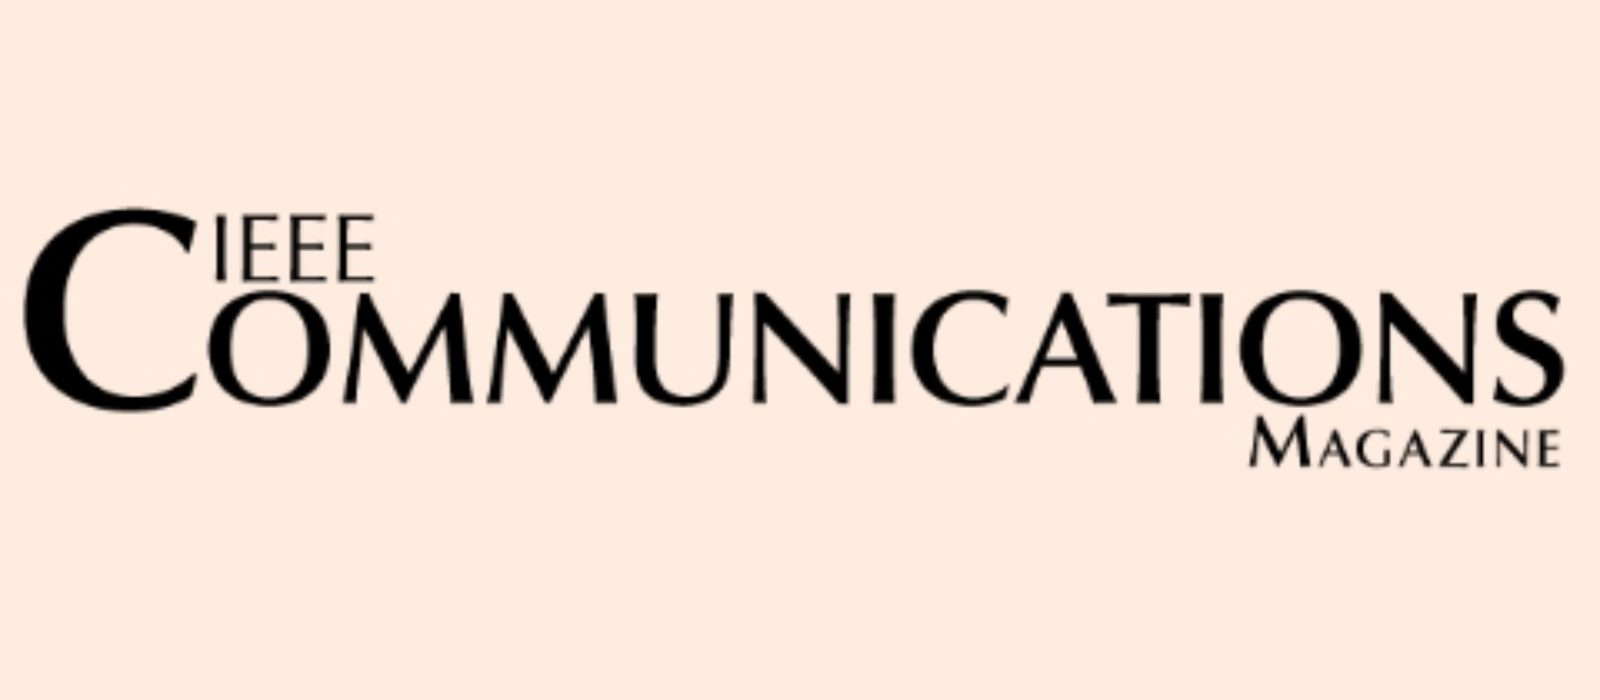 I have got a new IEEE Communication Magazine article to appear in January 2017